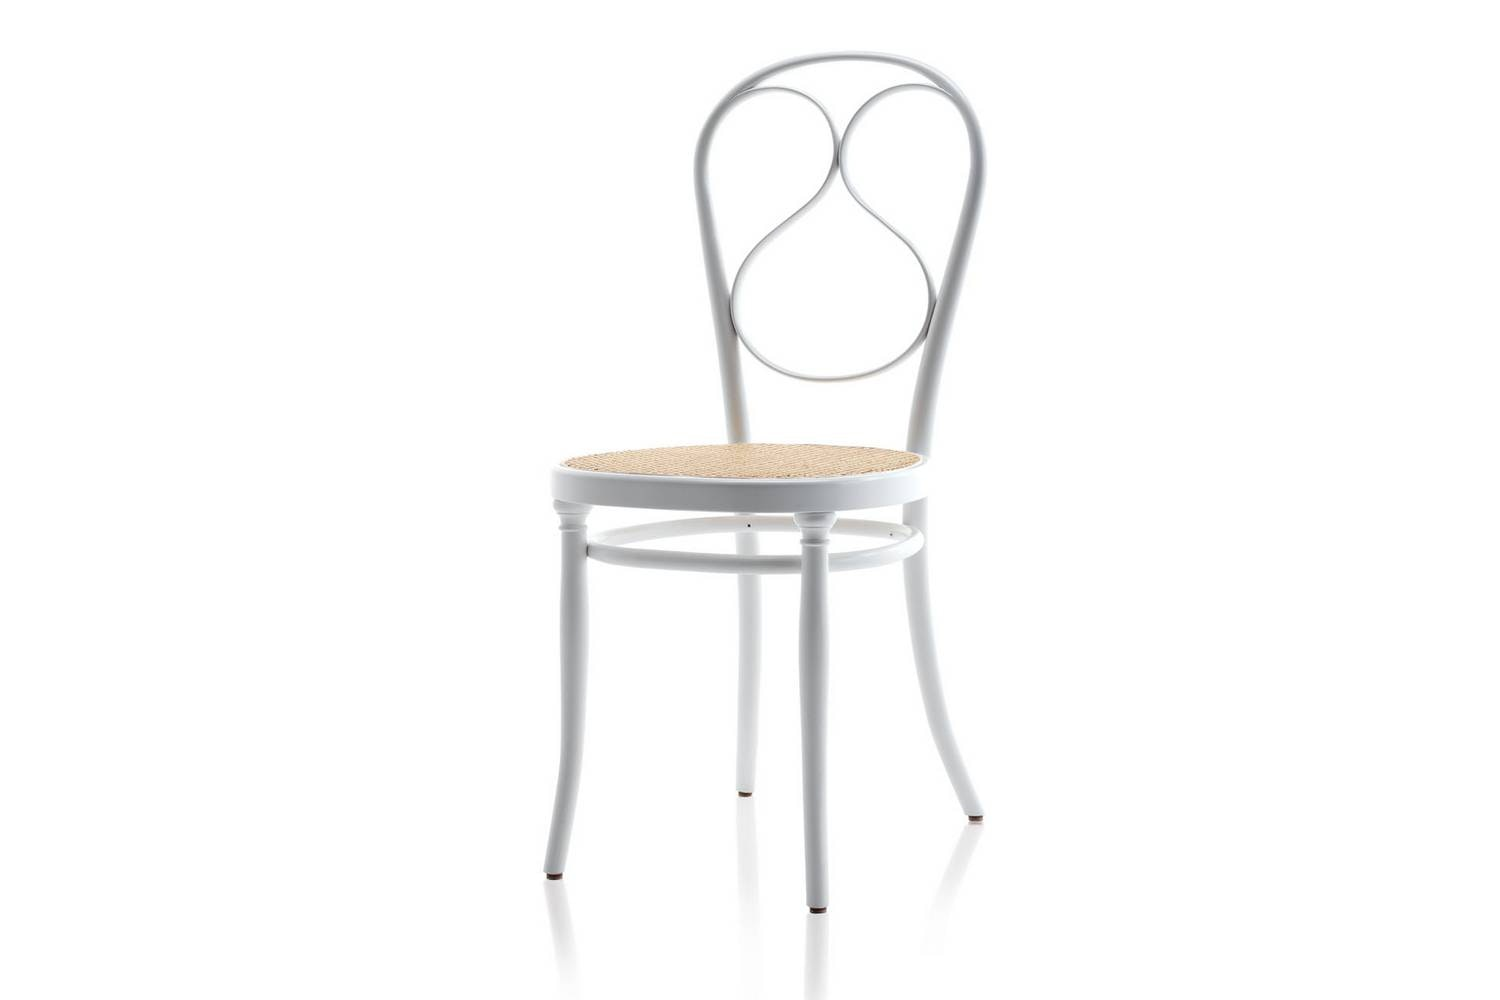 N. 1 Chair by Gebruder Thonet Vienna for Wiener GTV Design